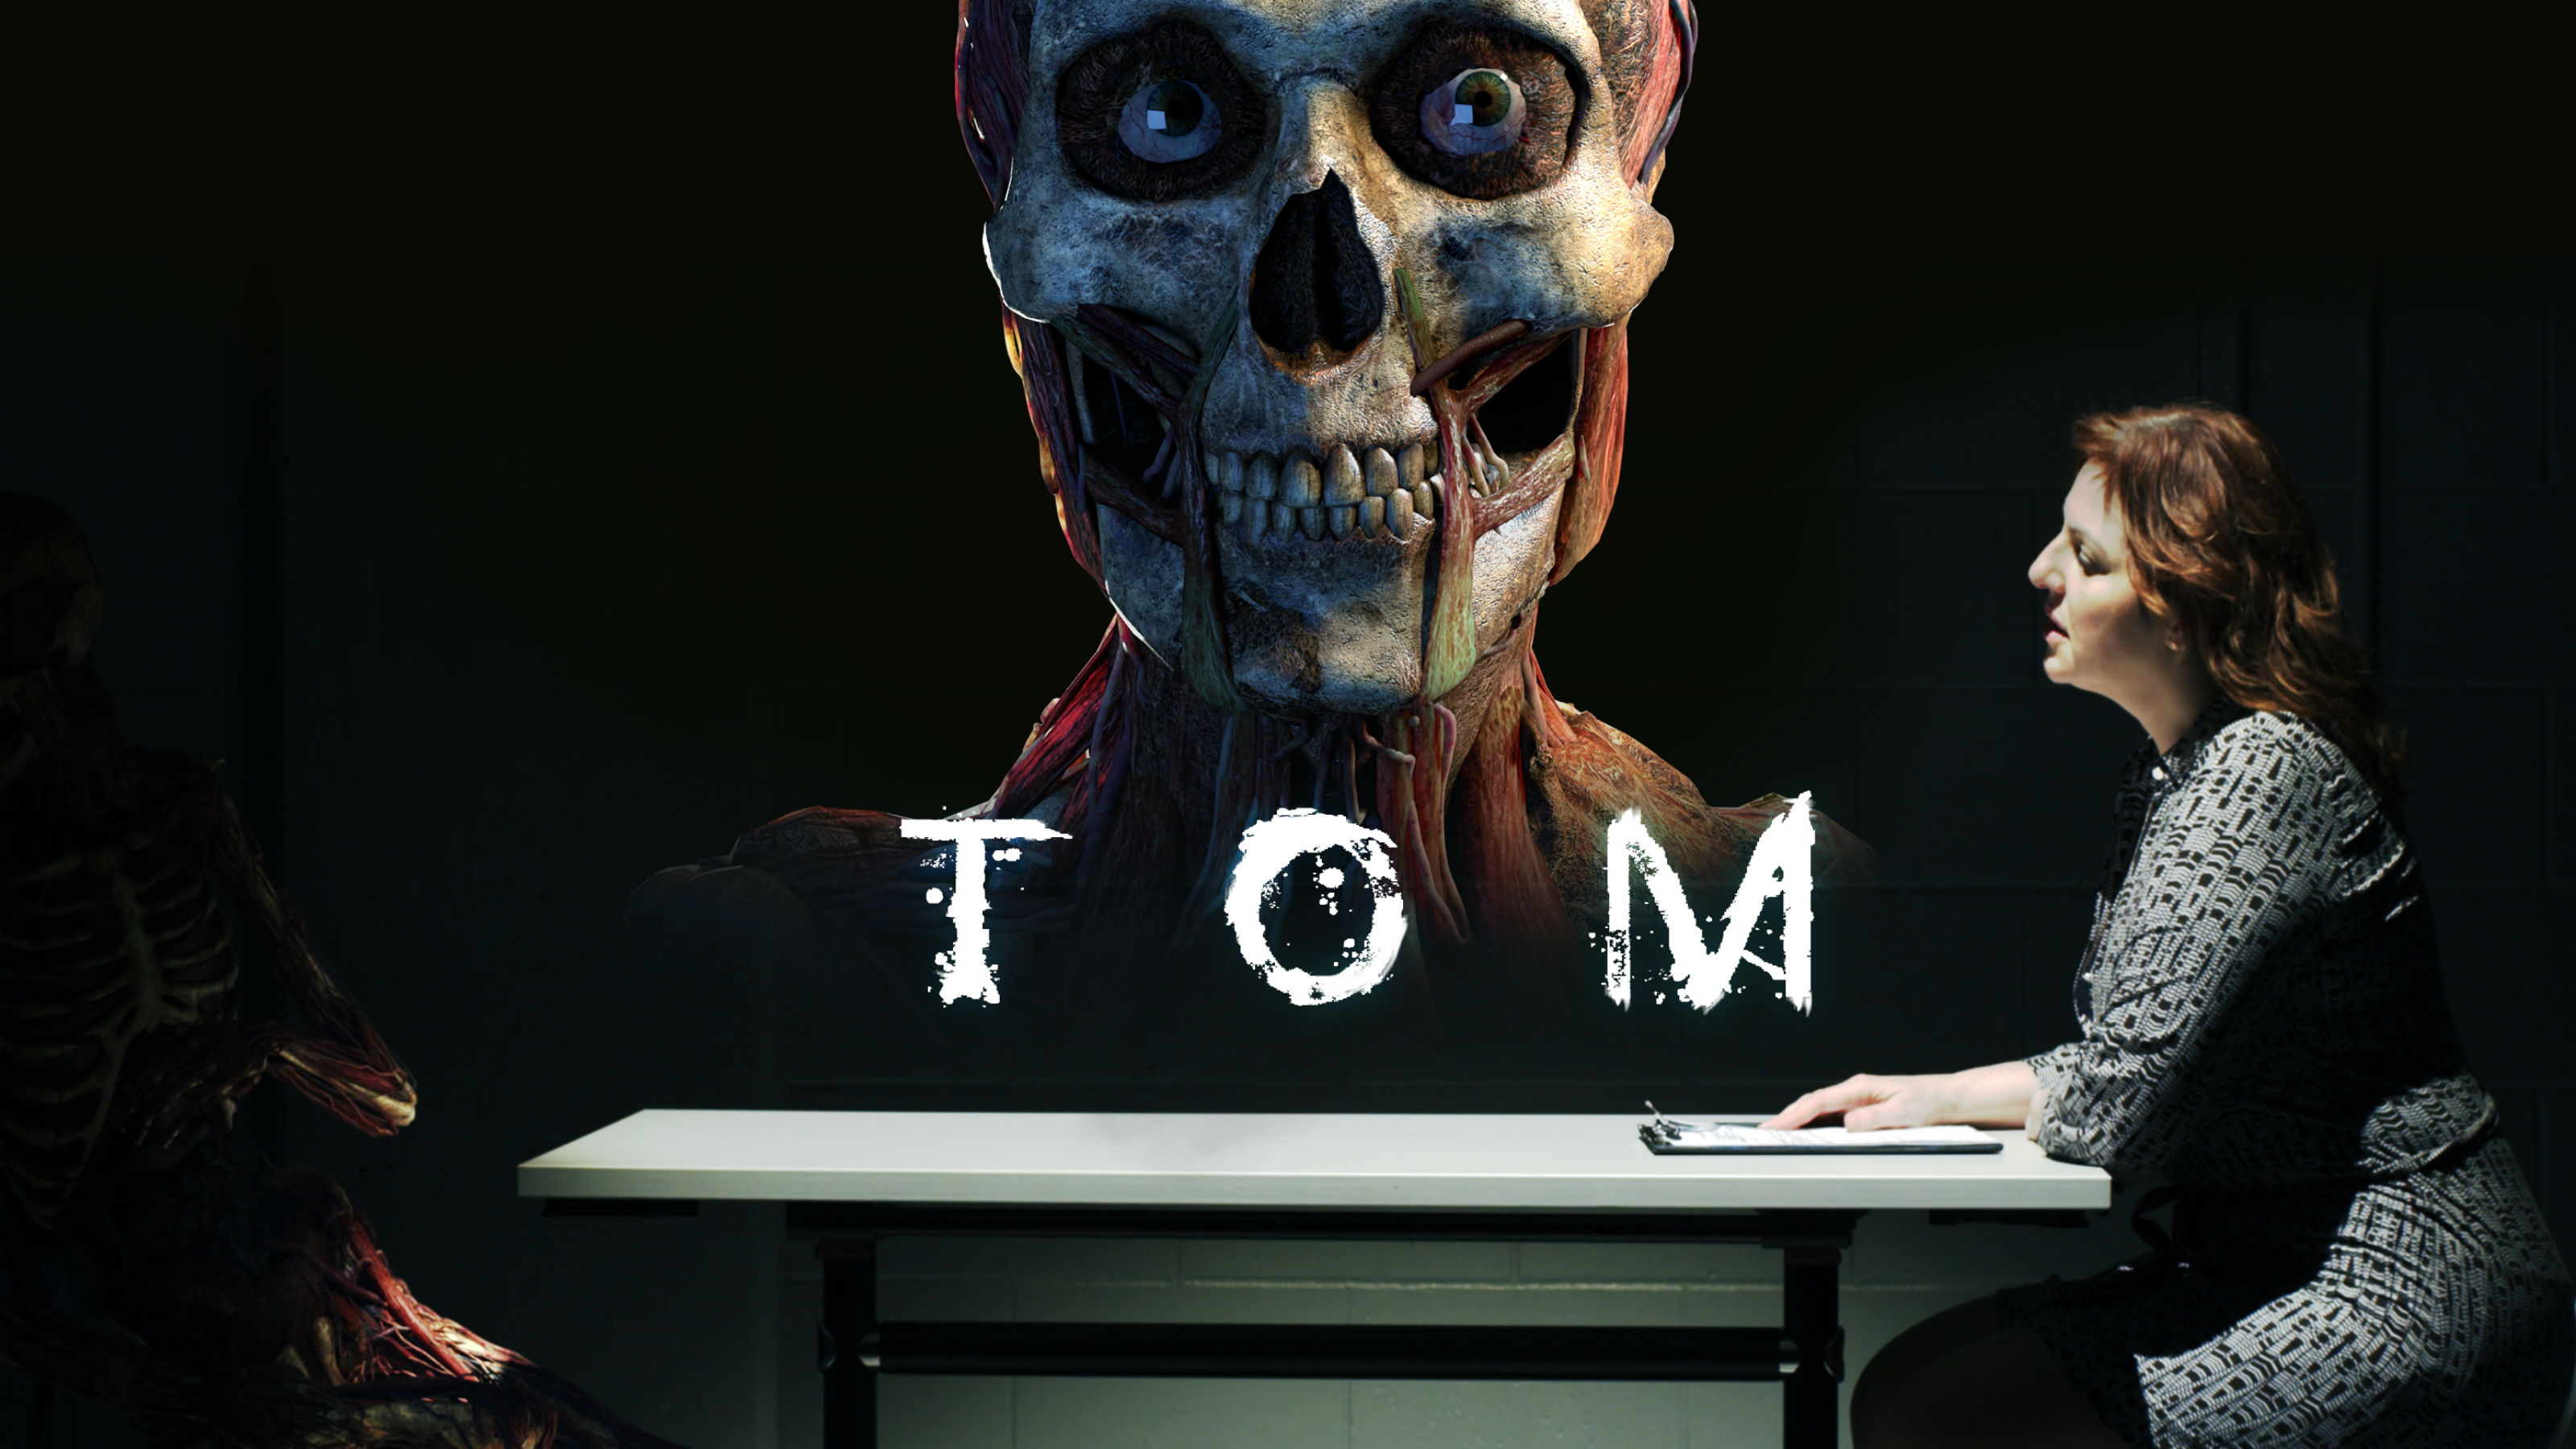 Skeletal face peers out on the move poster for film, Tom